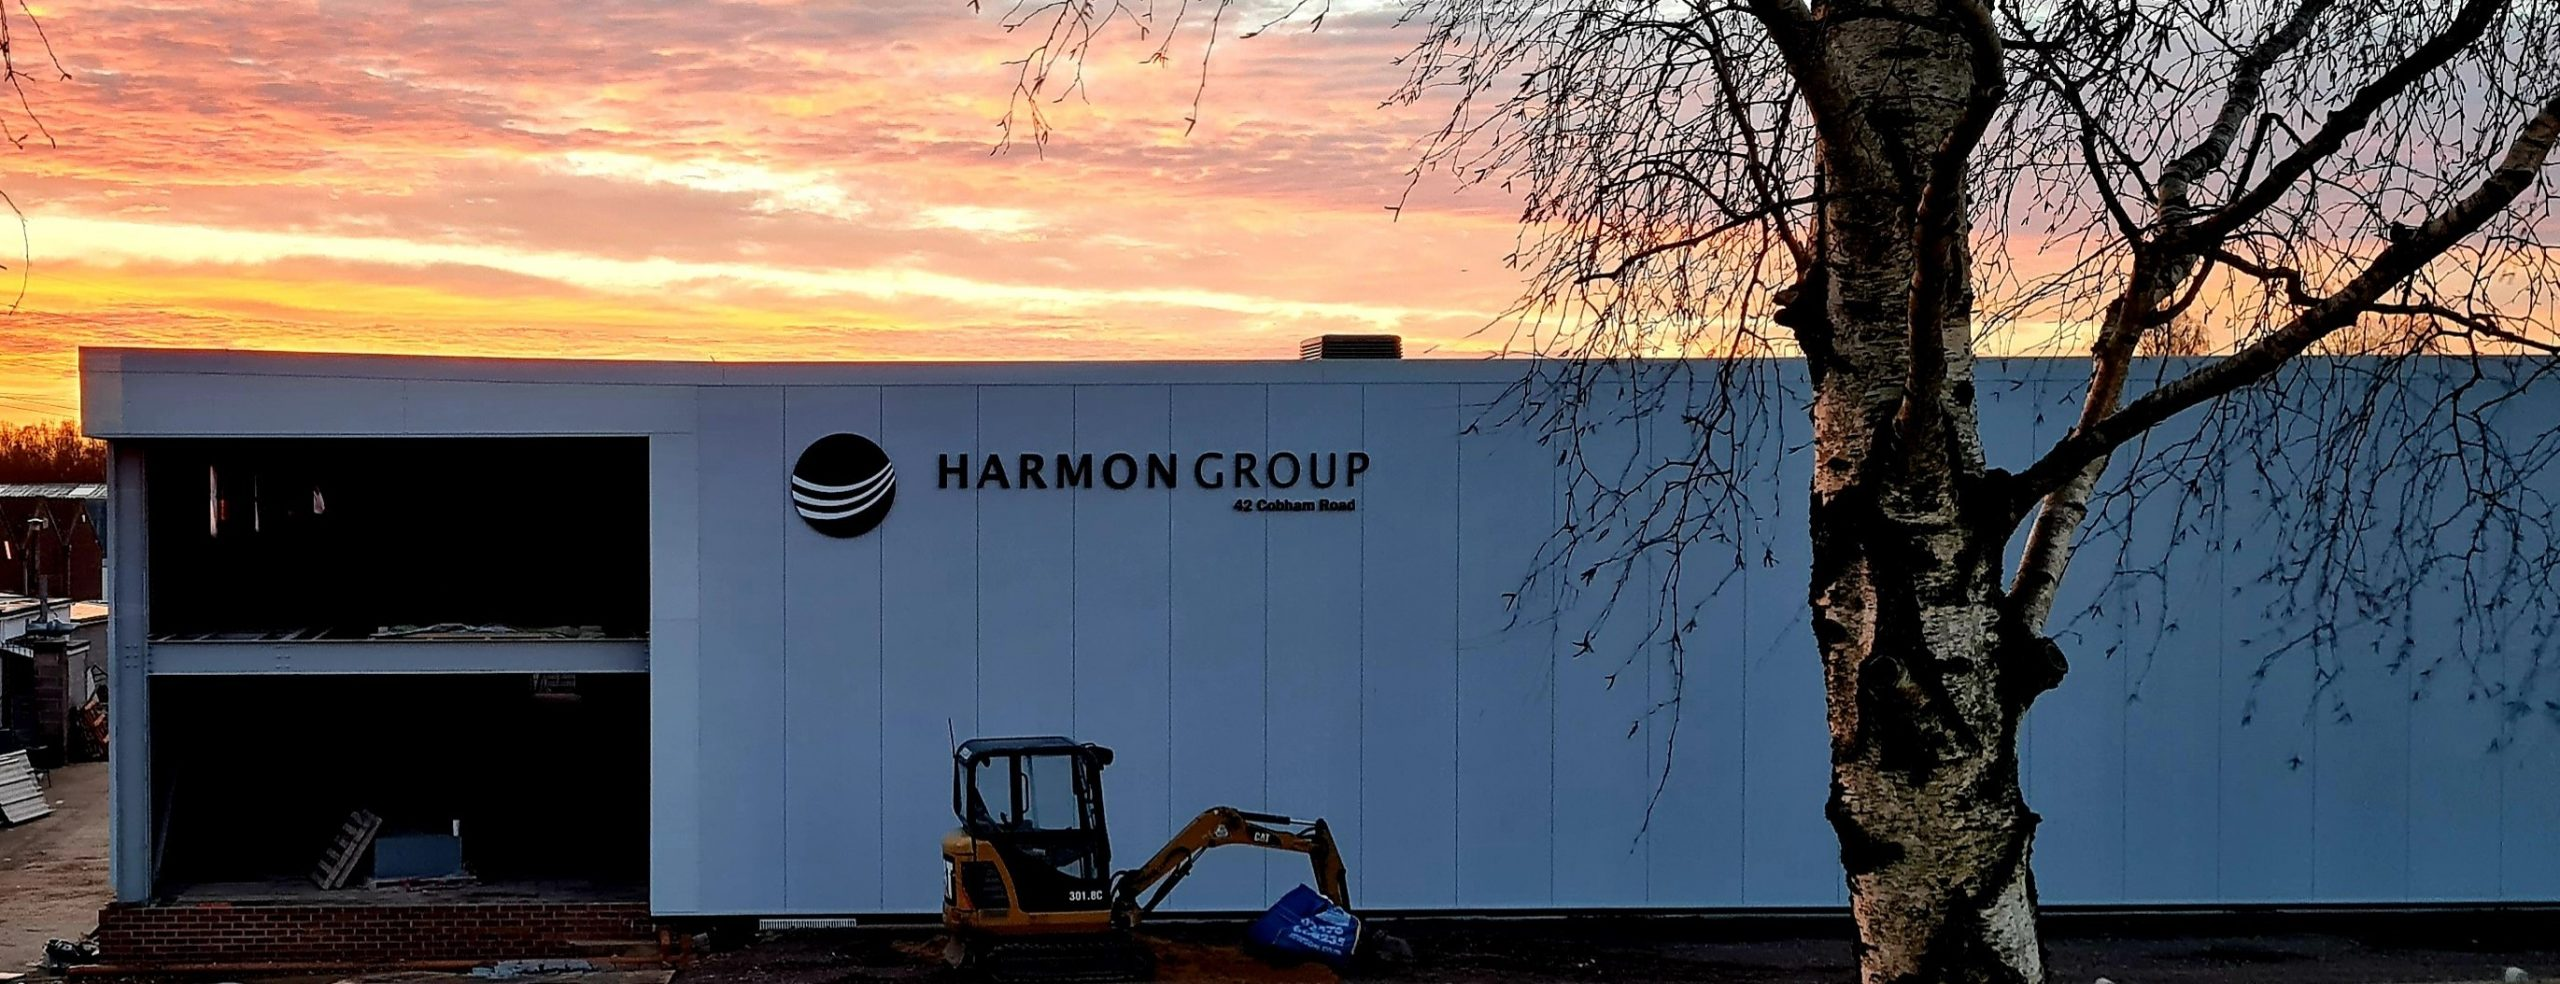 Harmon Group's Manufacturing expansion